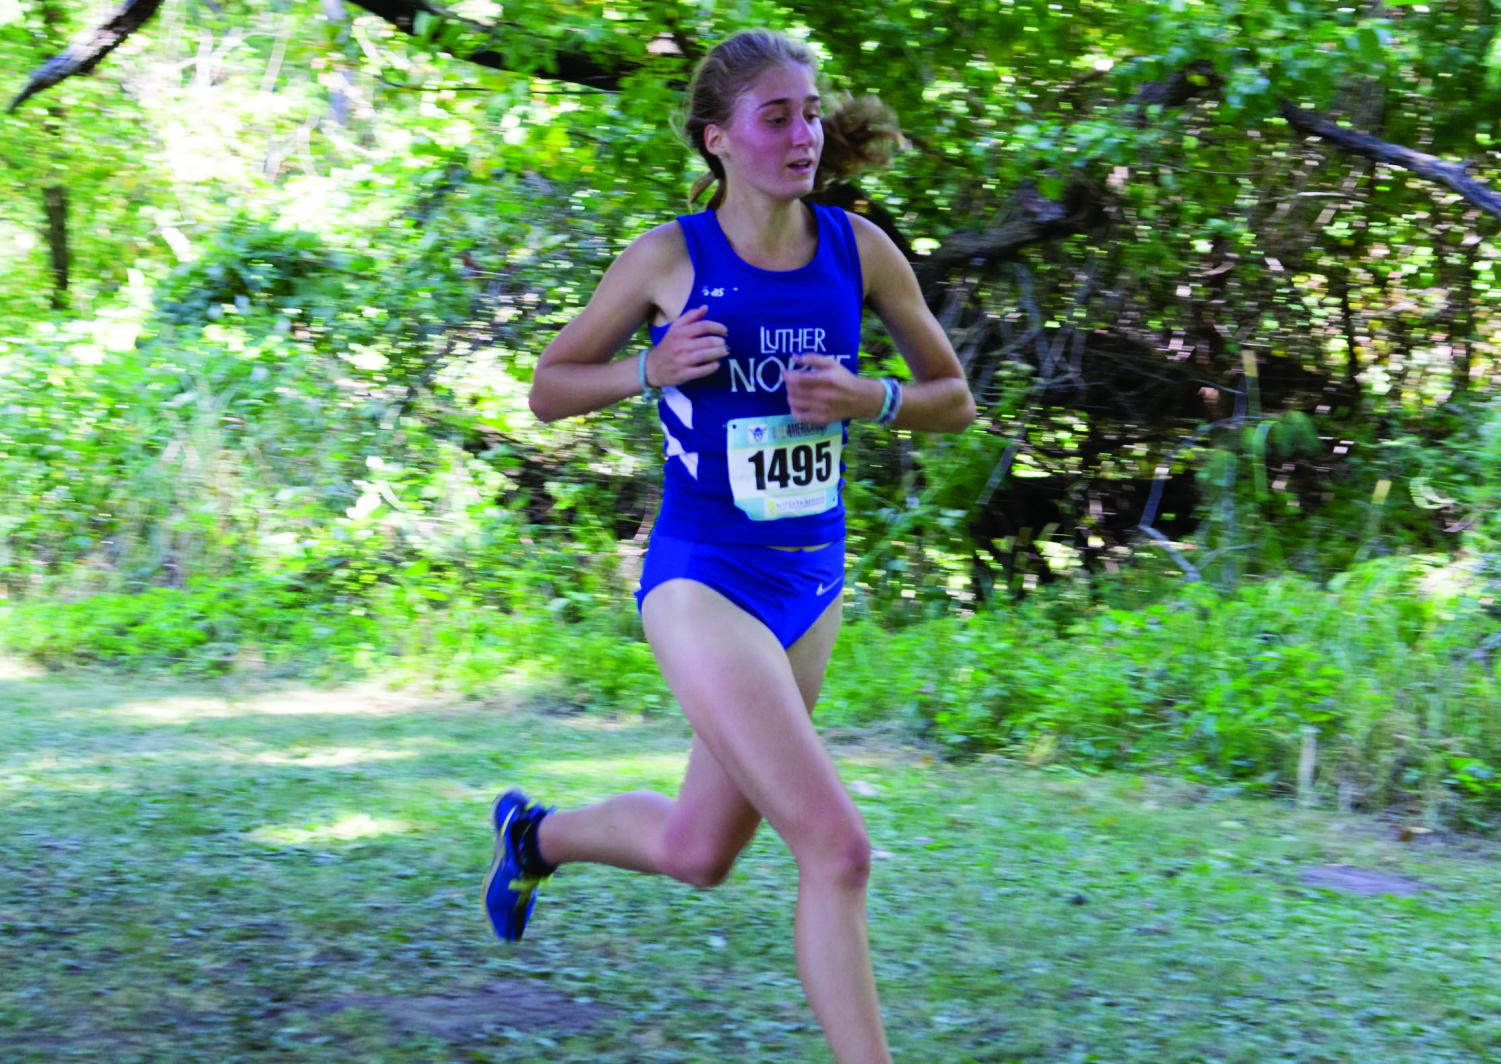 Makenzie Carney  ('18) in action at the Luther All American Meet, earlier this year.